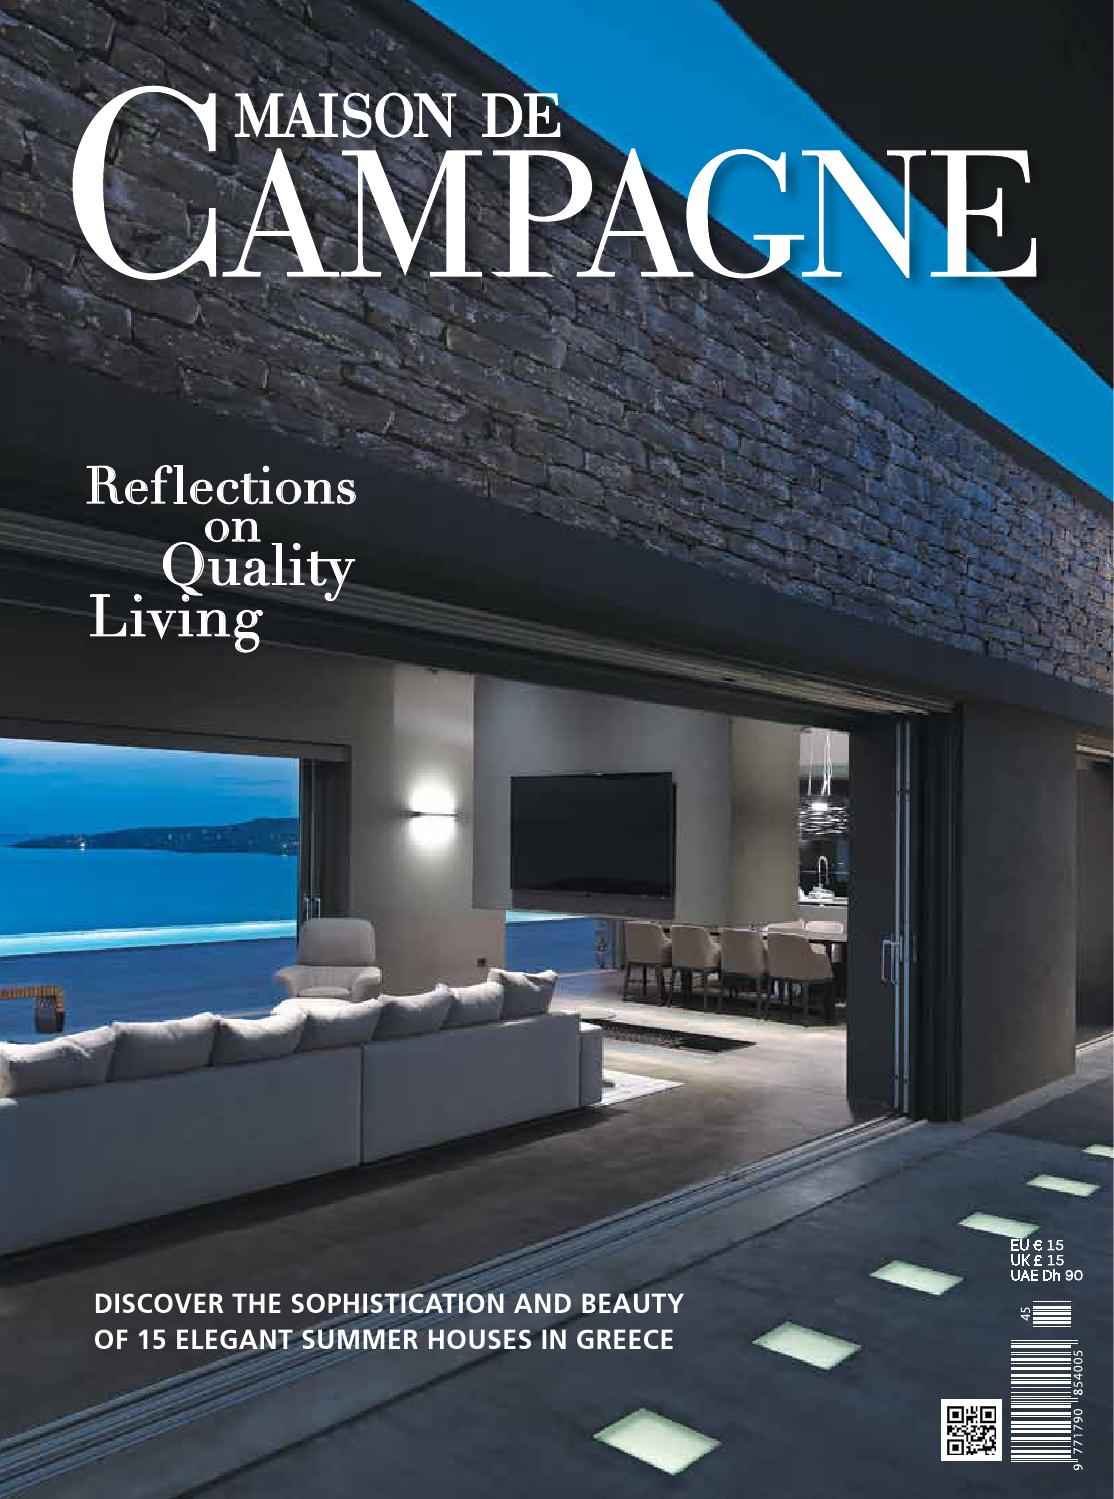 maison de campagne 2014 by ek magazine issuu. Black Bedroom Furniture Sets. Home Design Ideas